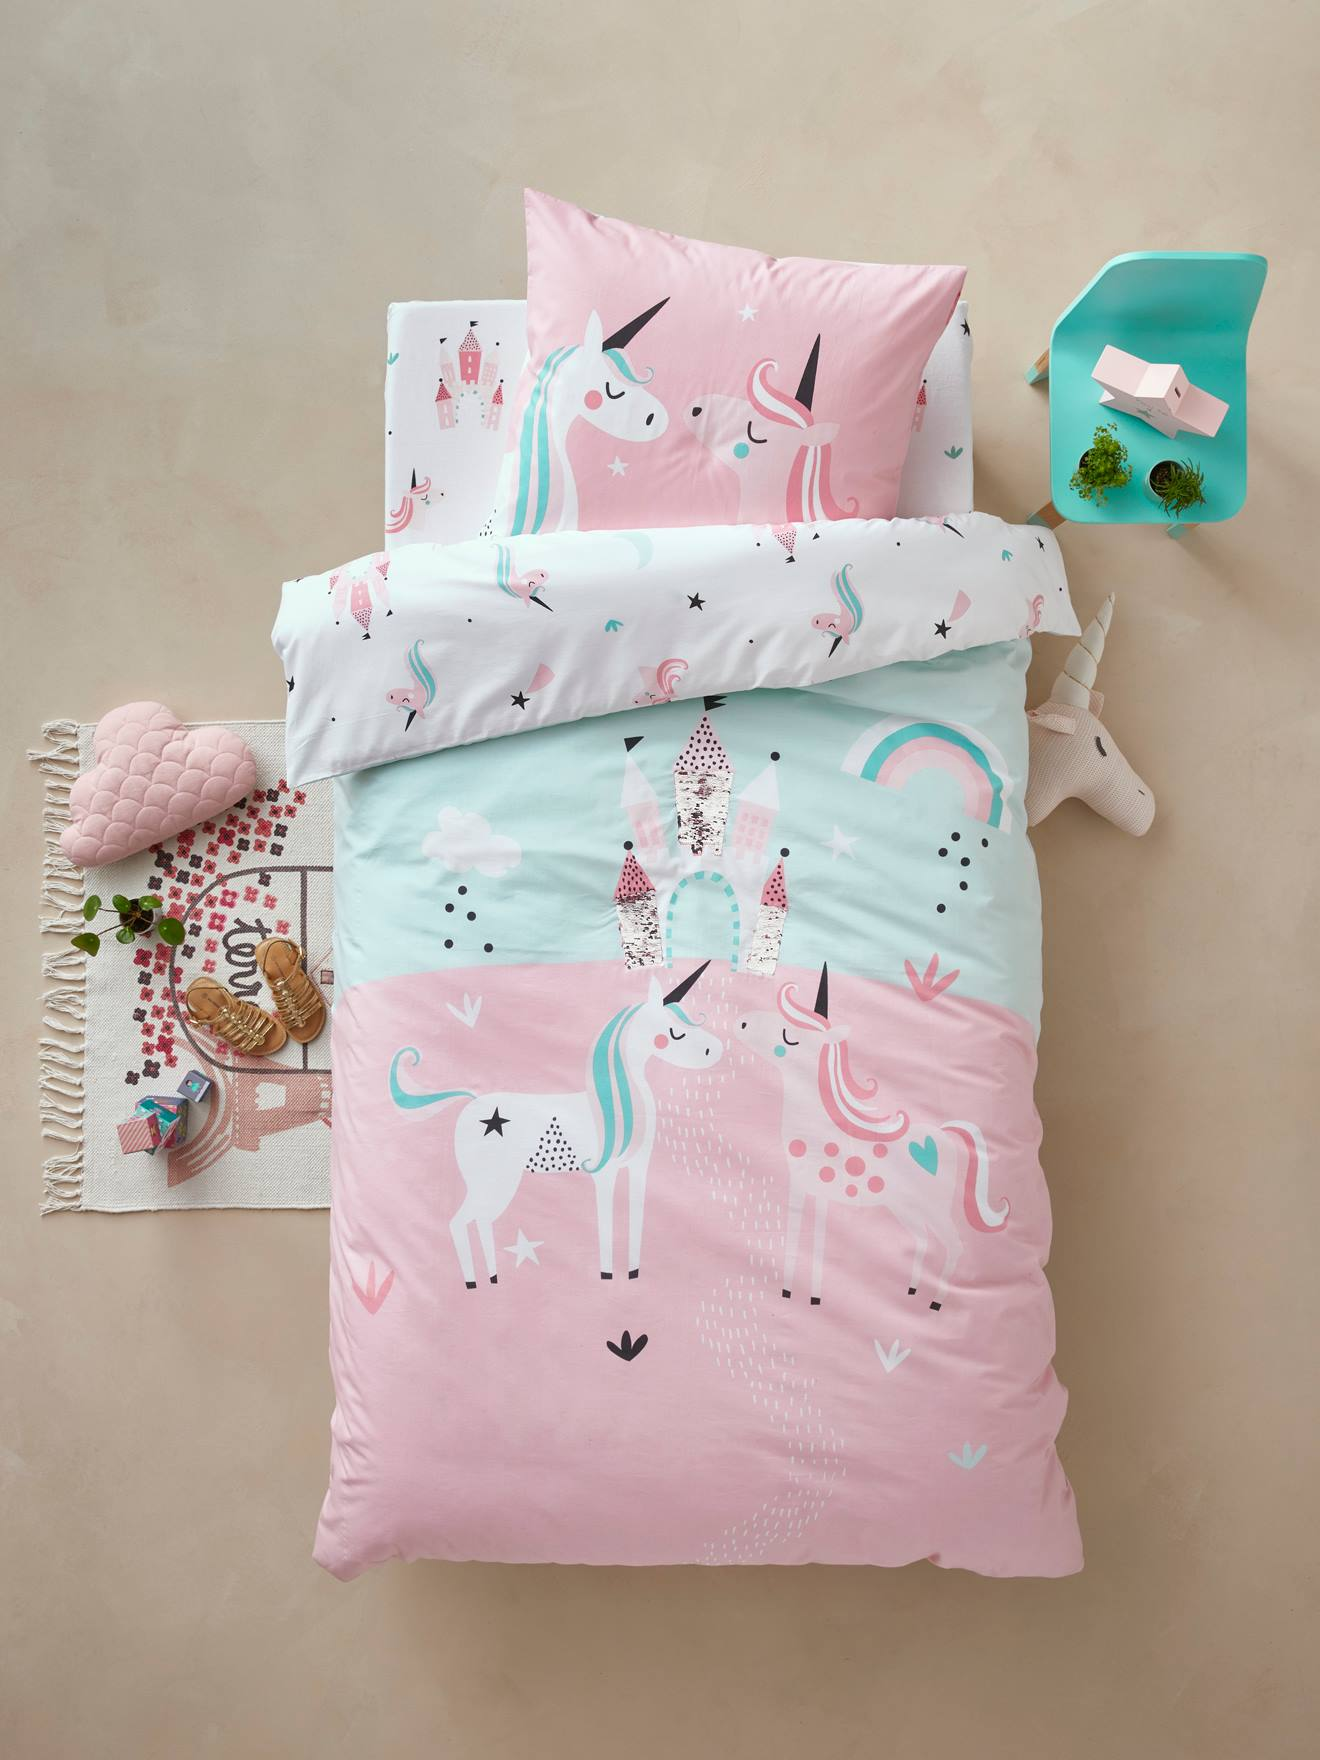 Girlsu0027 Duvet Cover + Pillowcase, Magic Unicorns Theme BLUE LIGHT SOLID WITH  DESIGN